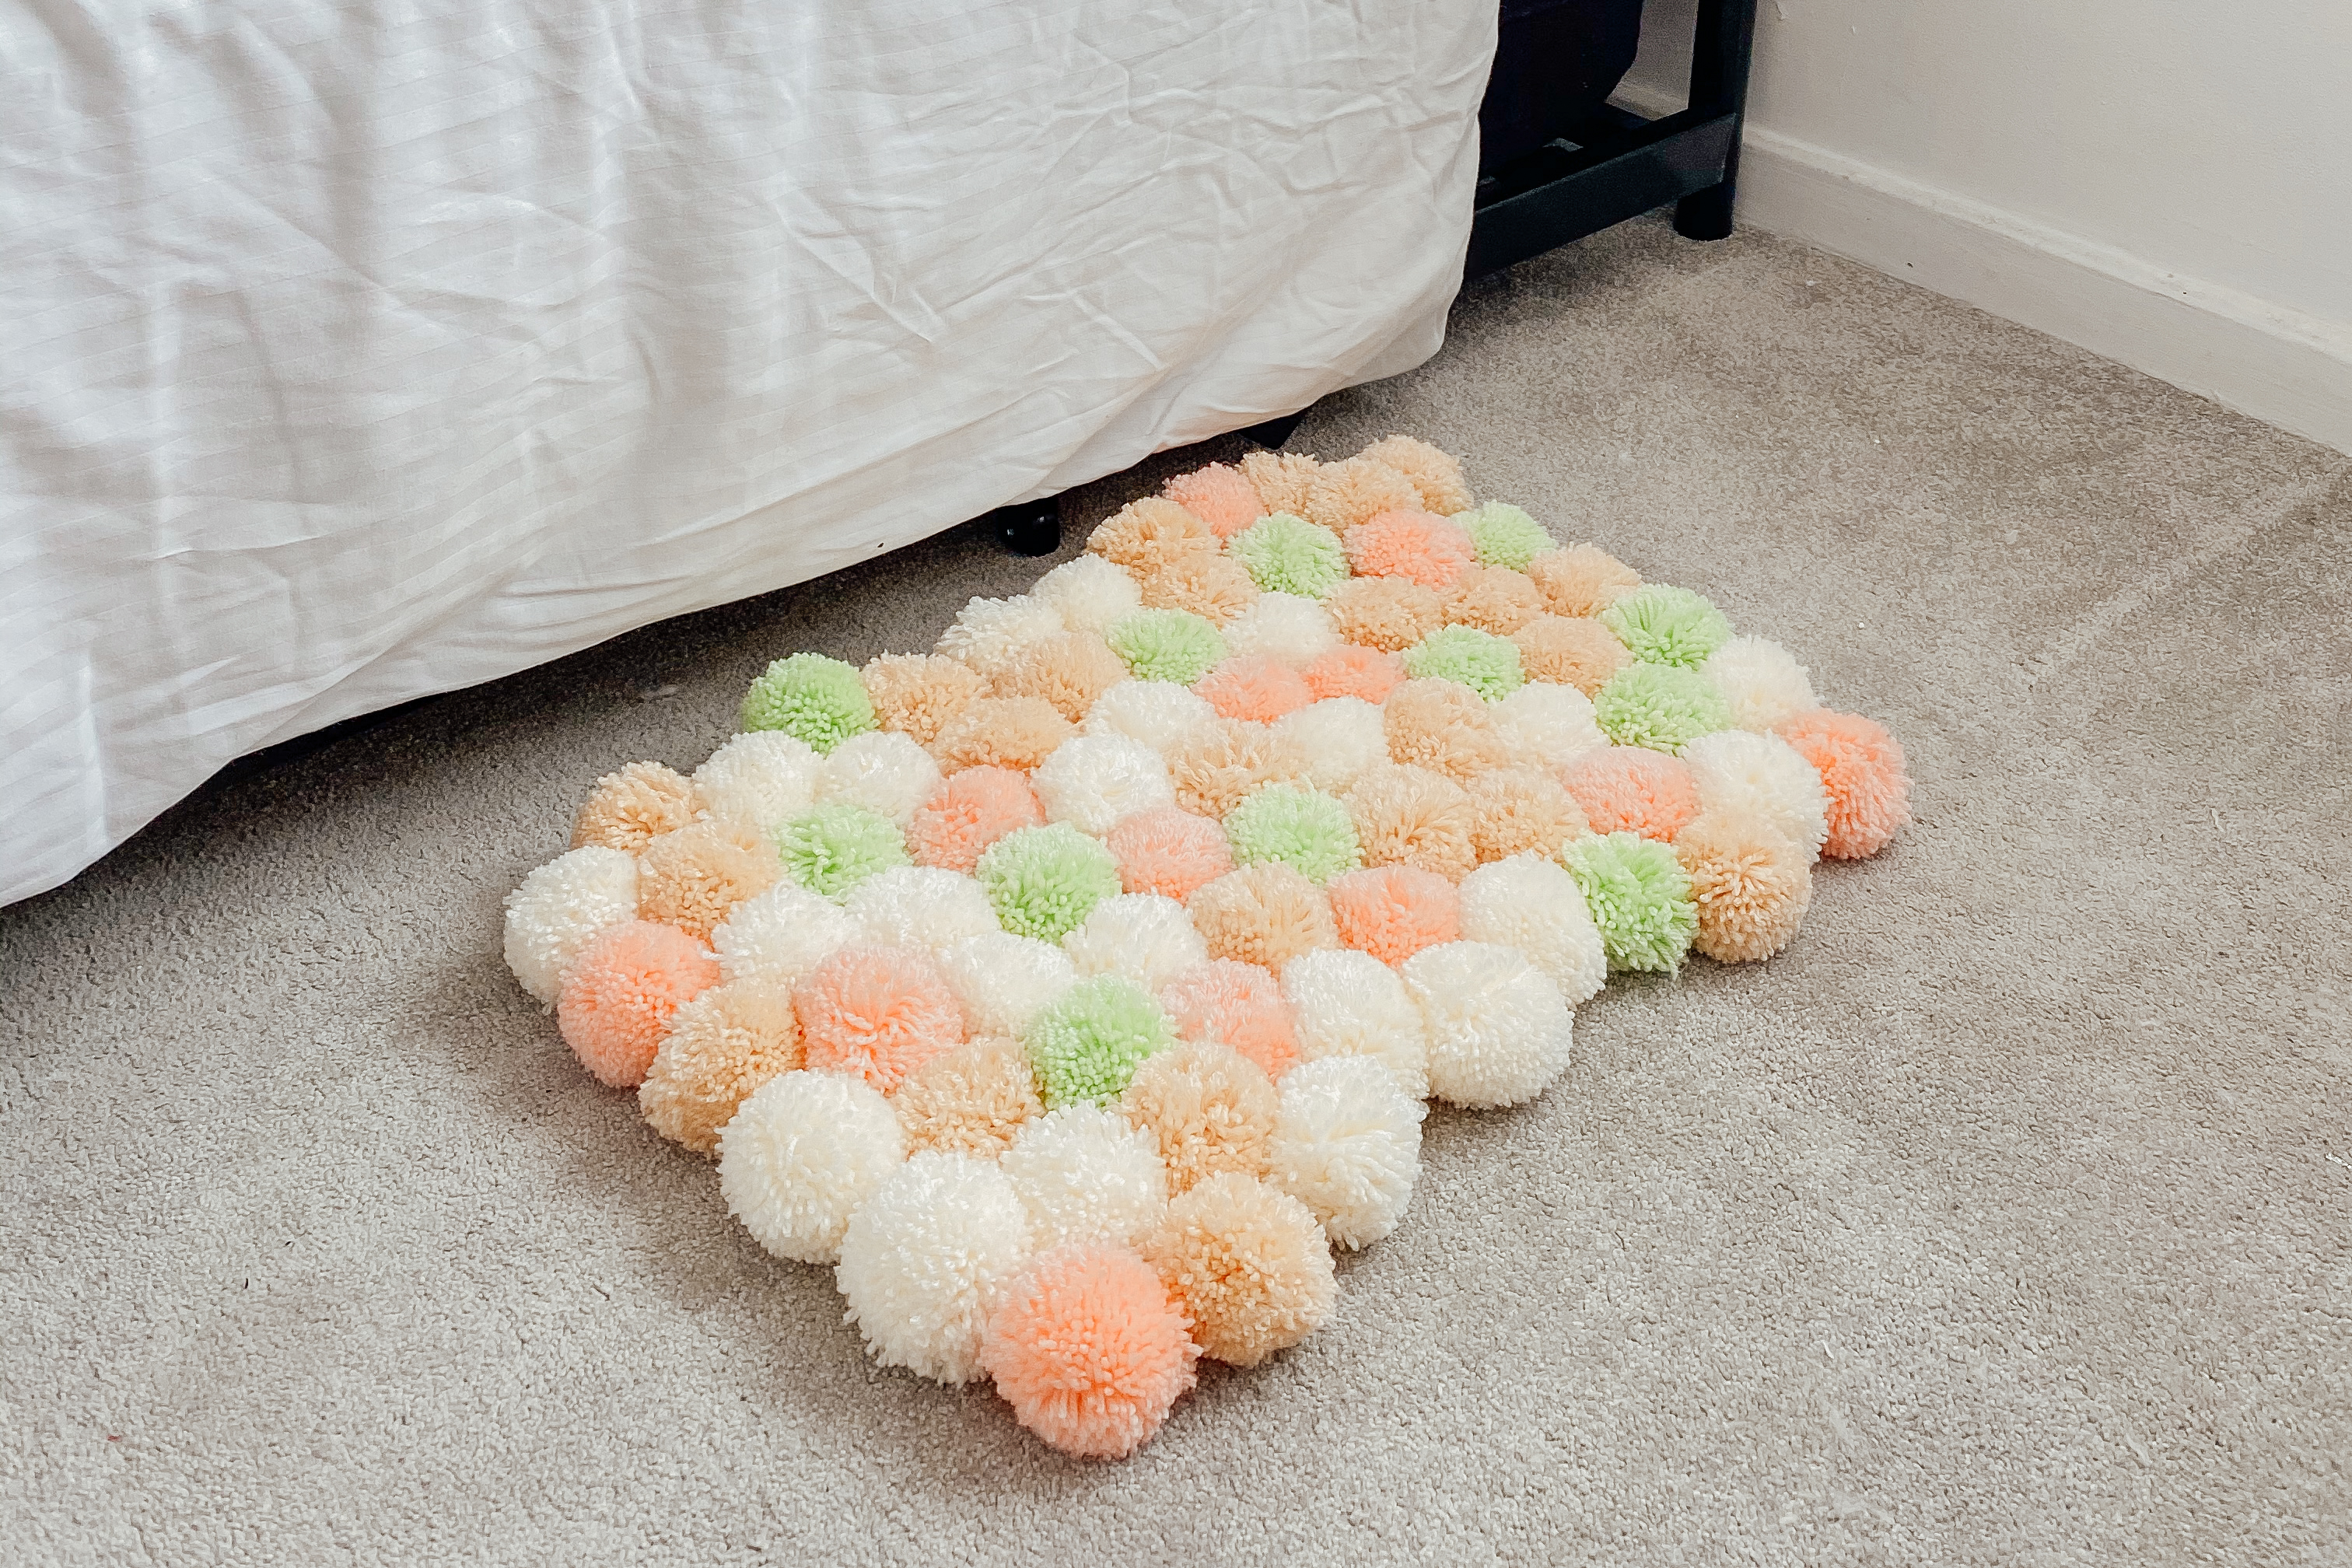 Pom-pom rug next to a bed